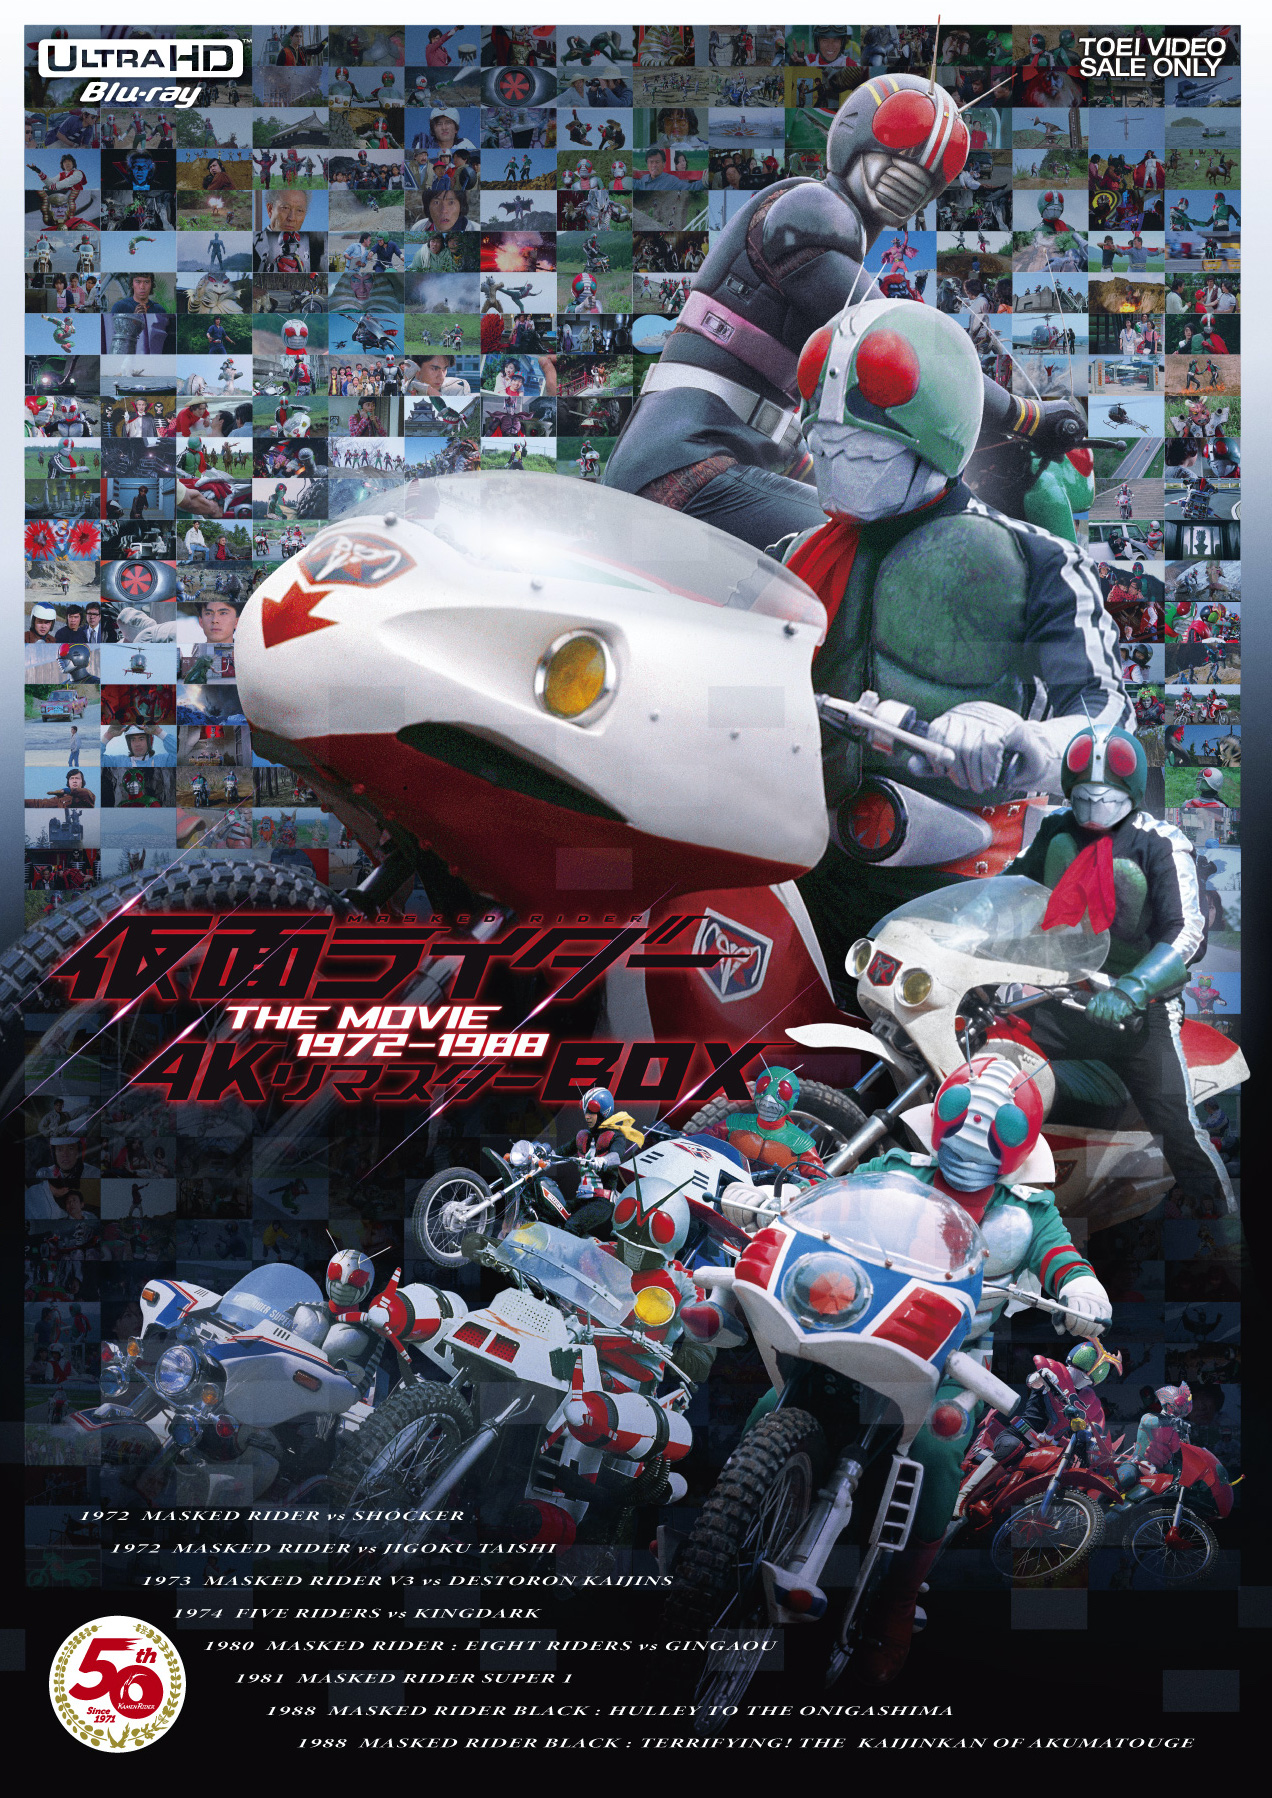 【4K ULTRA HD Blu-ray】「仮面ライダー THE MOVIE 1972‐1988 4KリマスターBOX(4K ULTRA HD Blu-ray&Blu-ray Disc4枚組)」(メーカー特典&抽選特典付き)